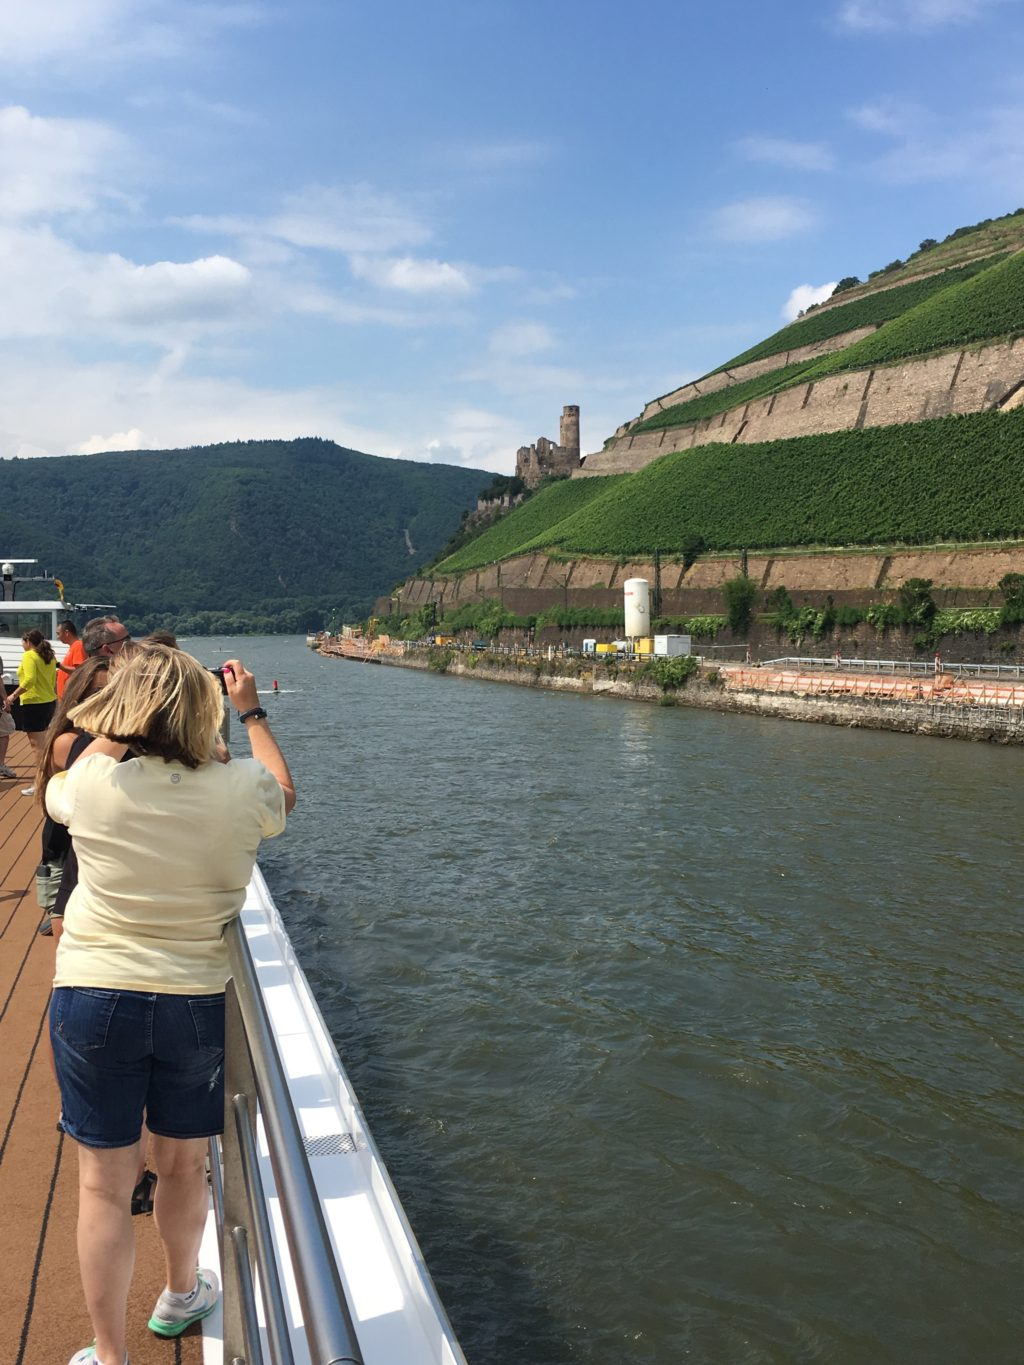 Like most of the passengers, Plaatje's favorite section of the river is the scenic Middle Rhine. * Photo: Heidi Sarna